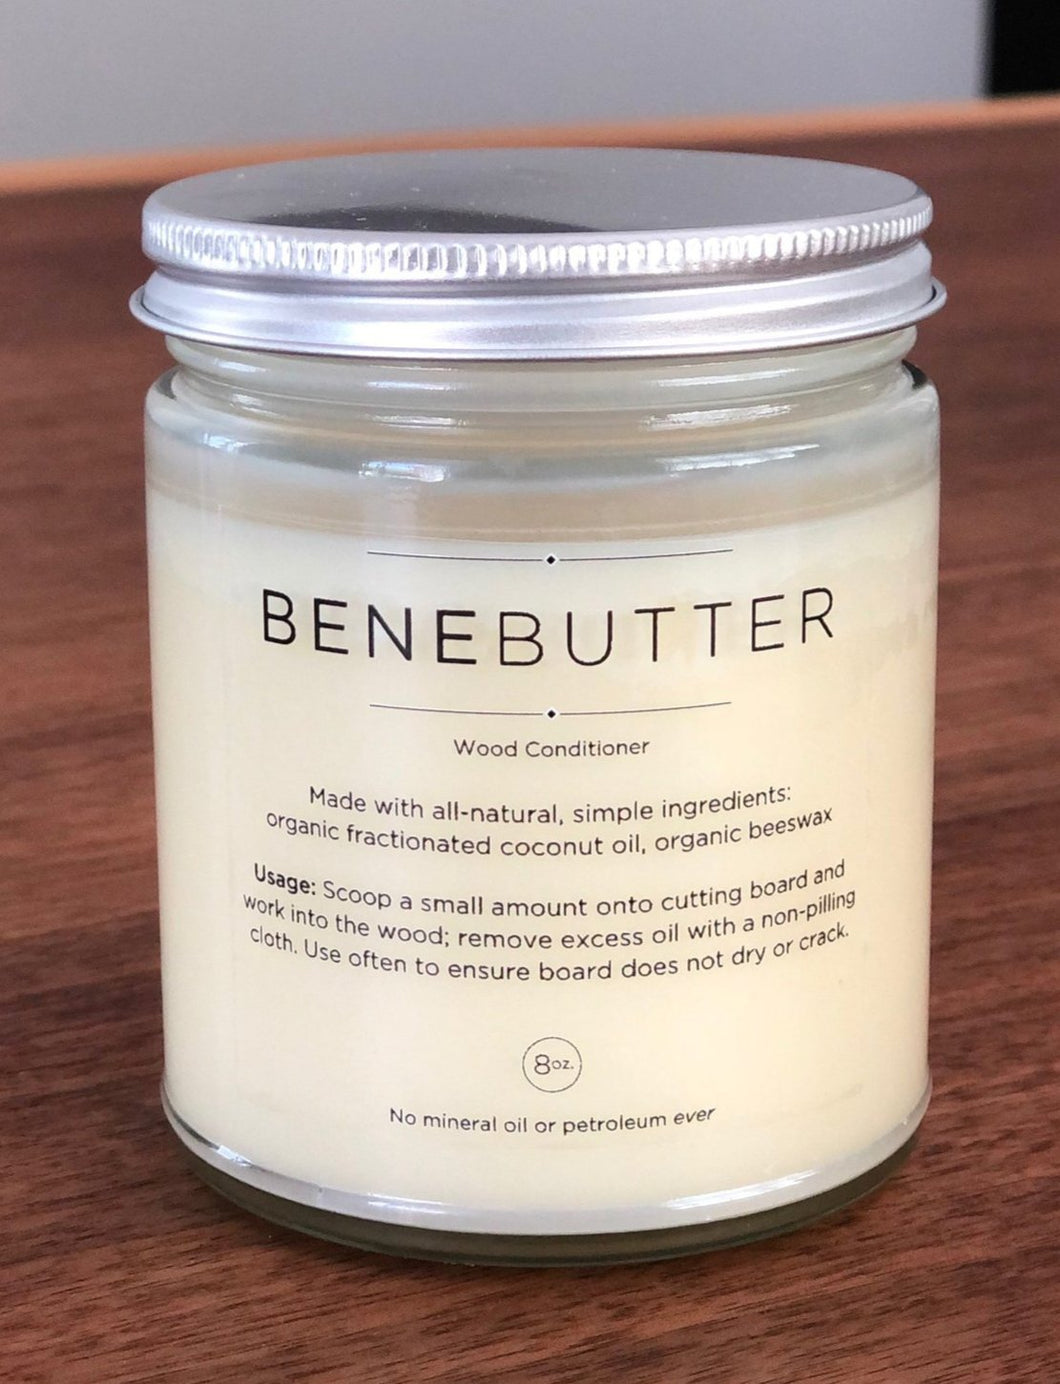 BeneButter Wood Conditioner for Cutting Boards (8 oz.)